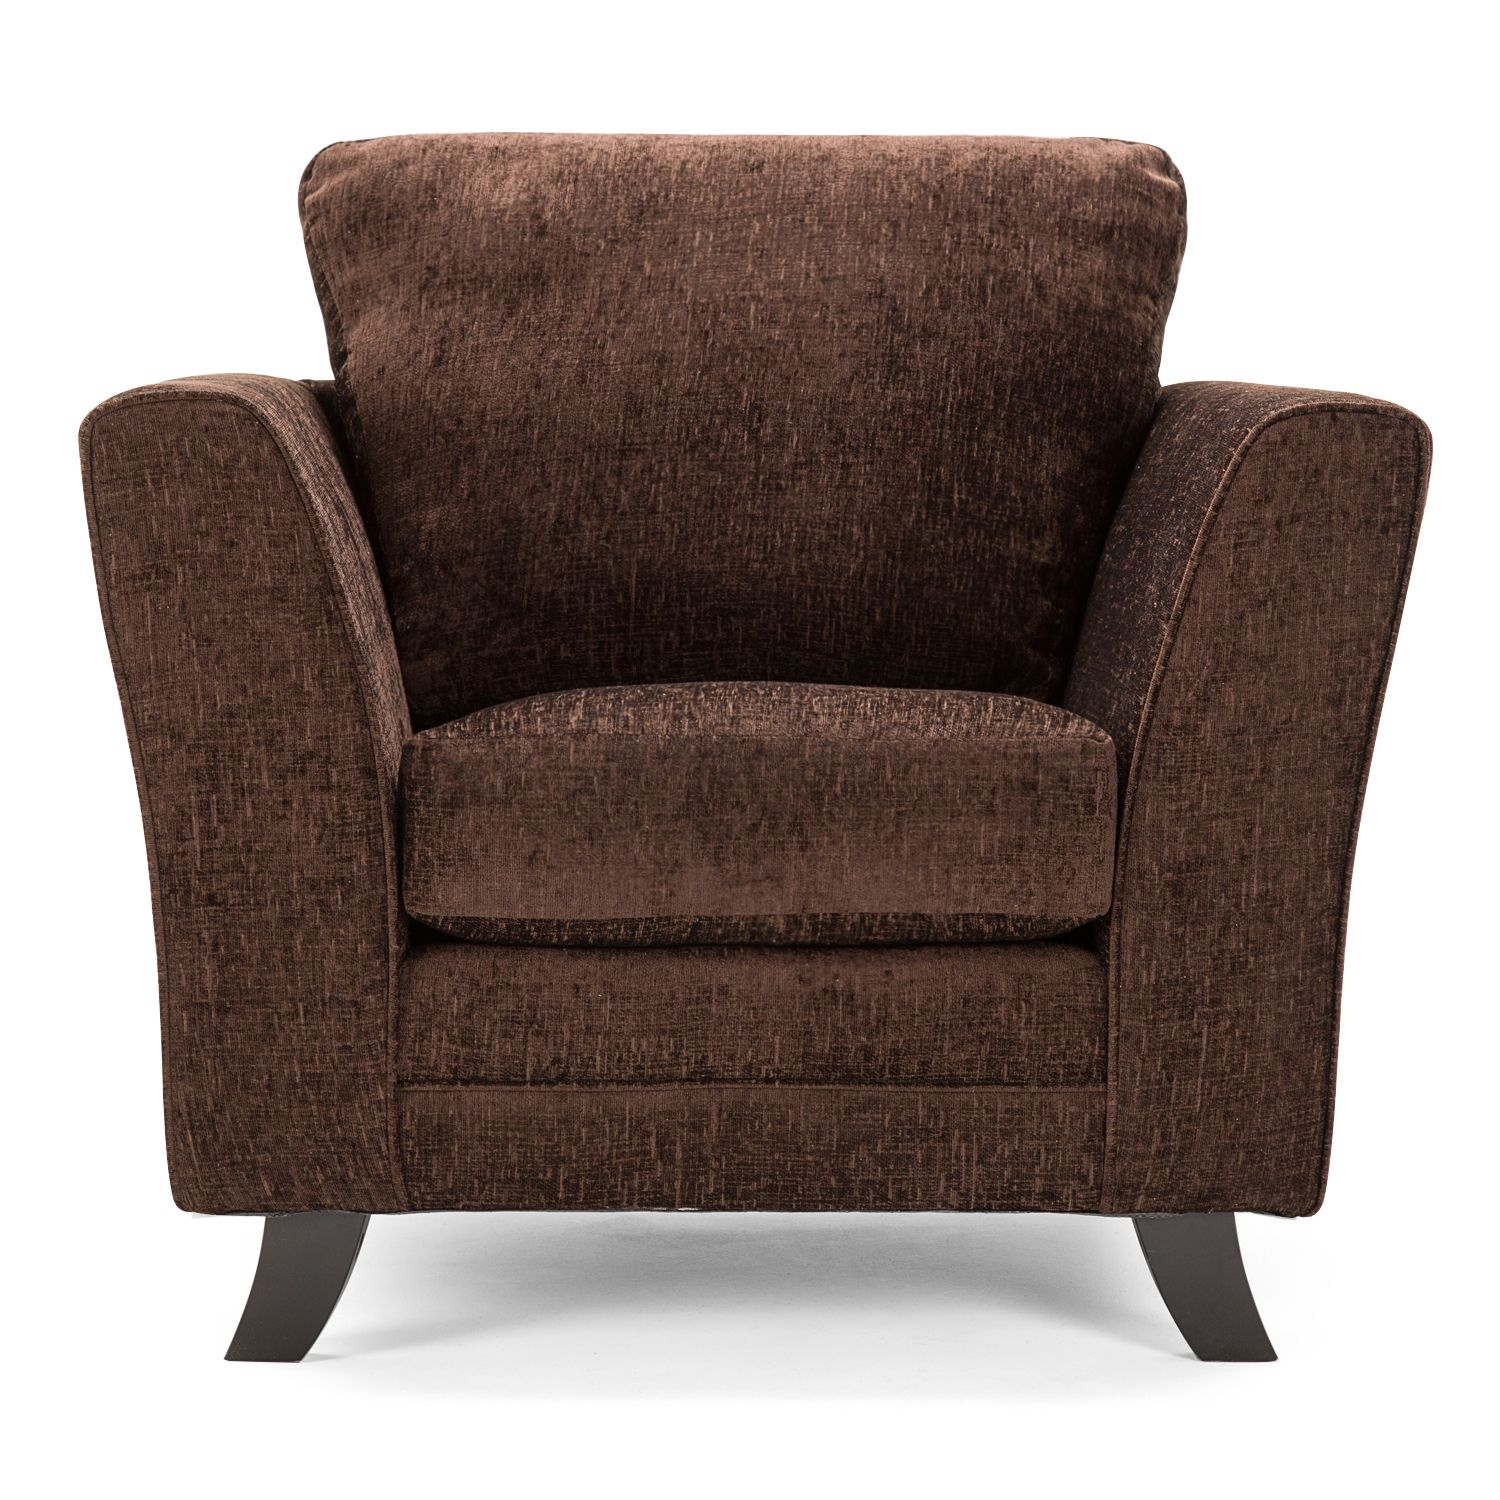 armchairs cheap | uk armchairs | armchairs for sale ...